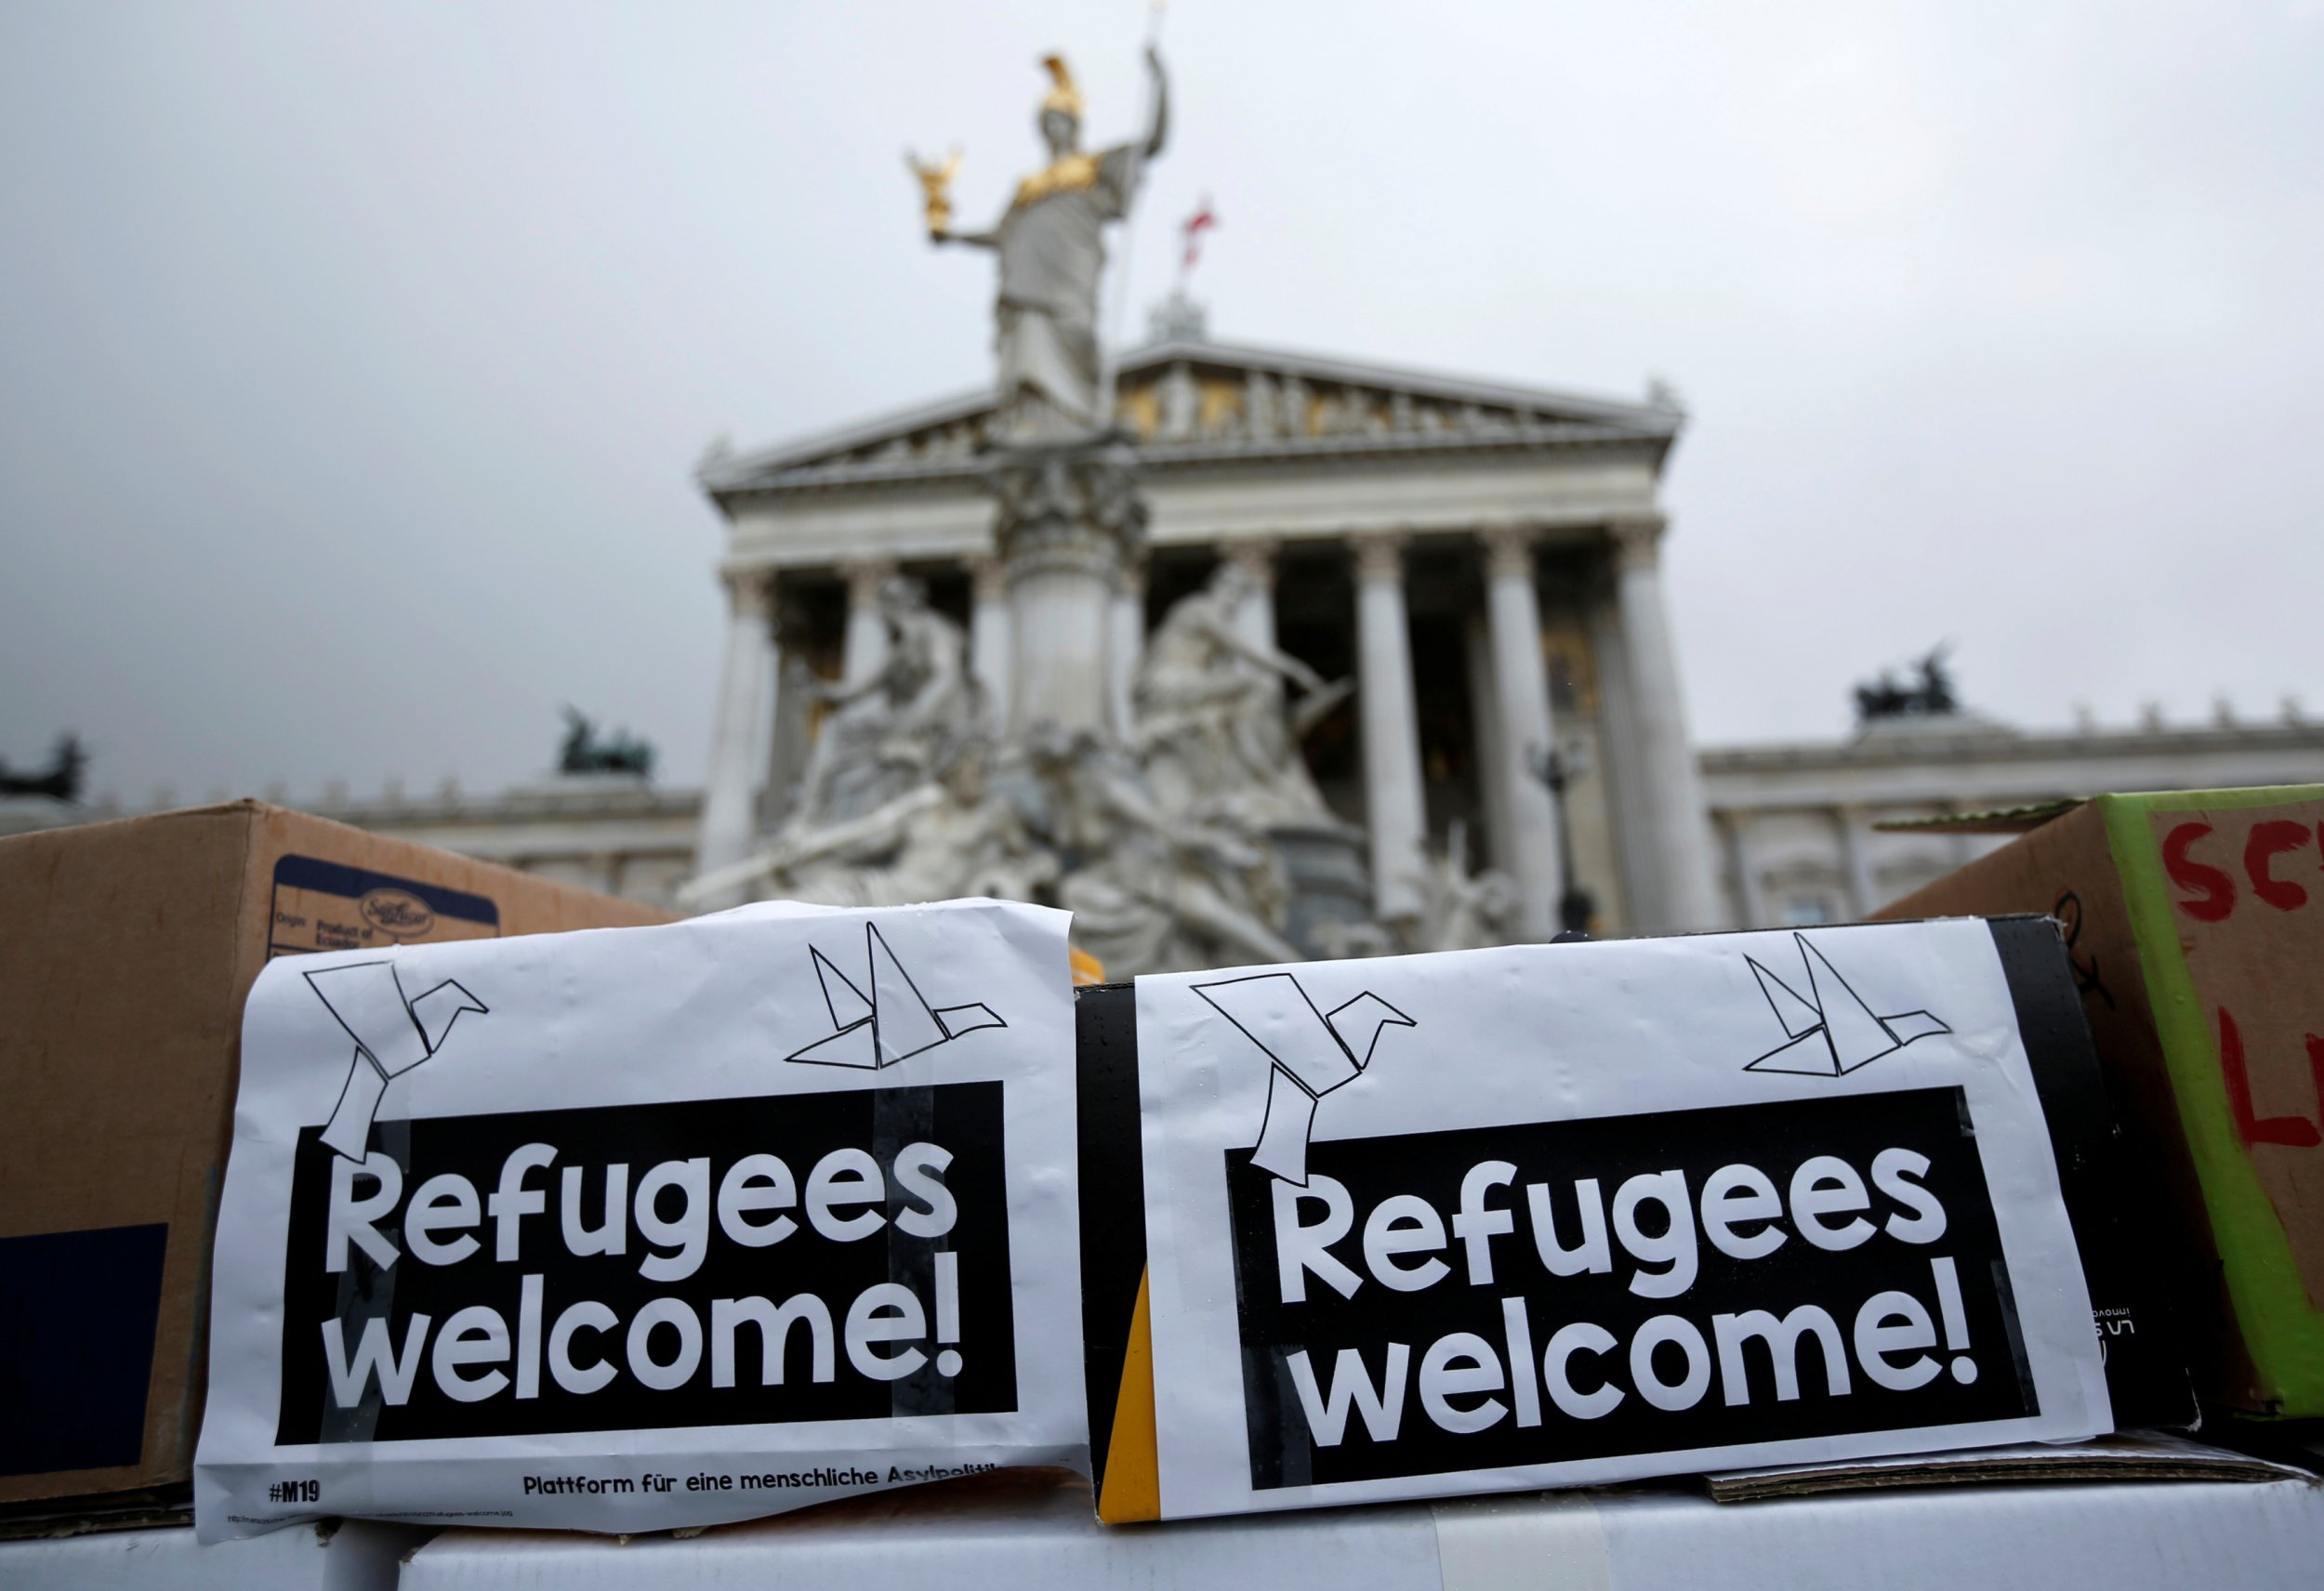 Vienna Refugees Protest